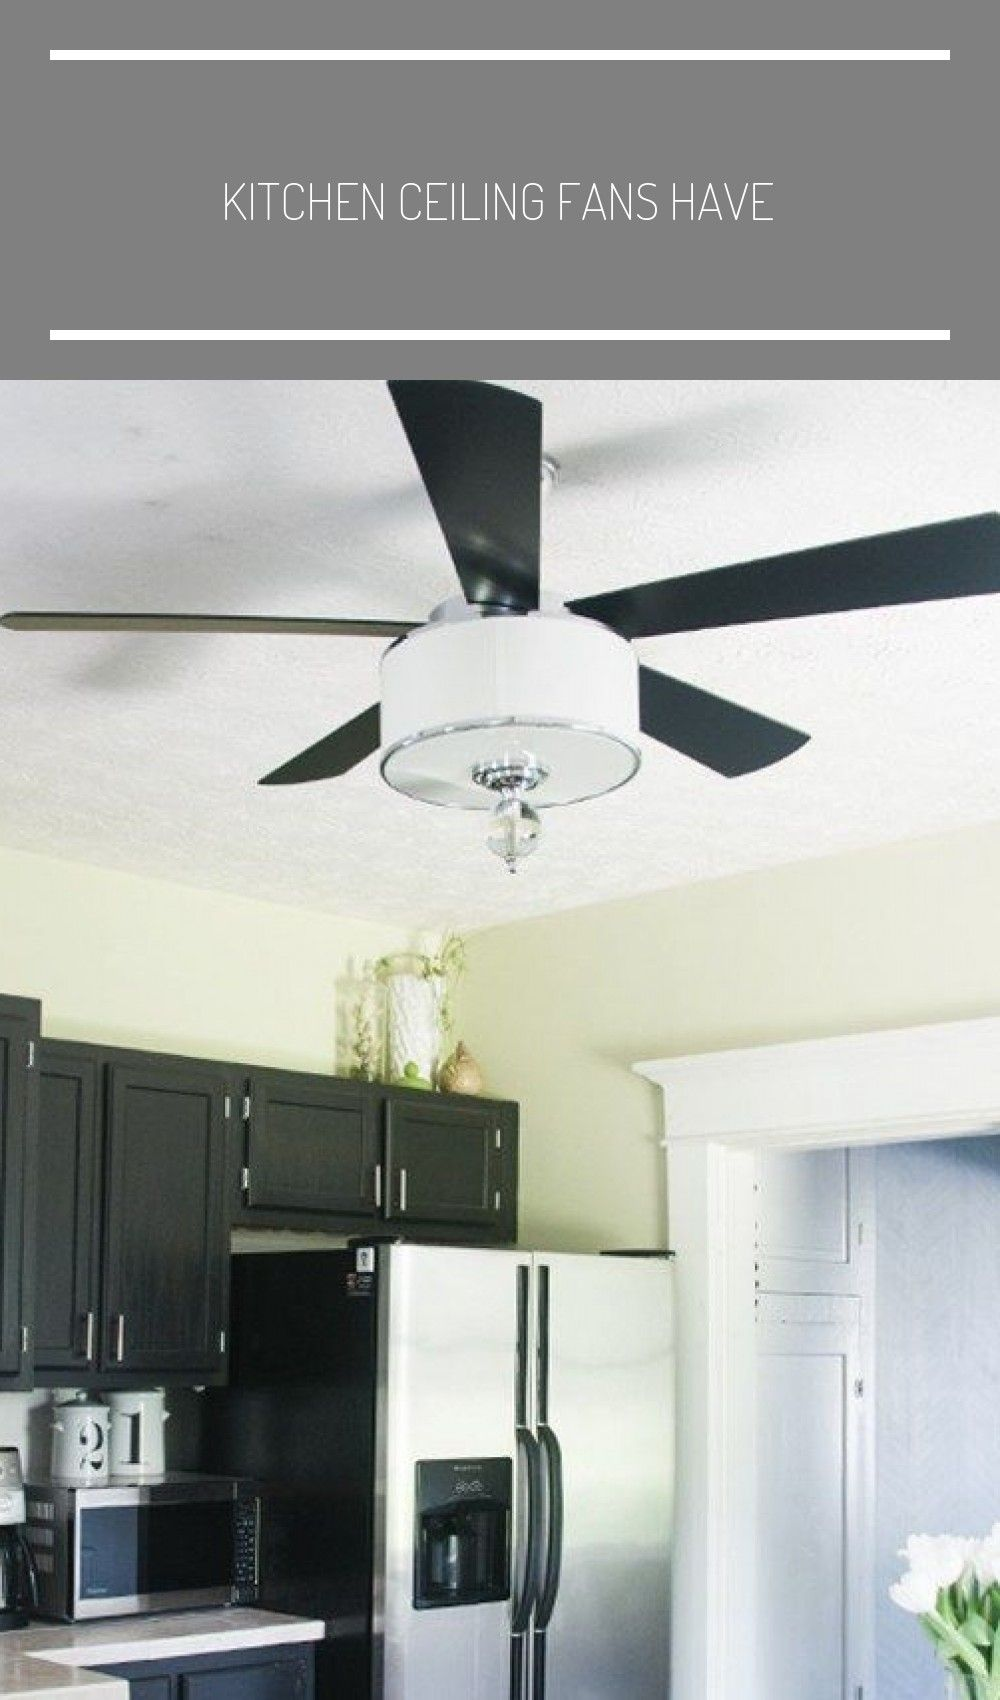 Kitchen Ceiling Fans Have In 2020 With Images Ceiling Fan In